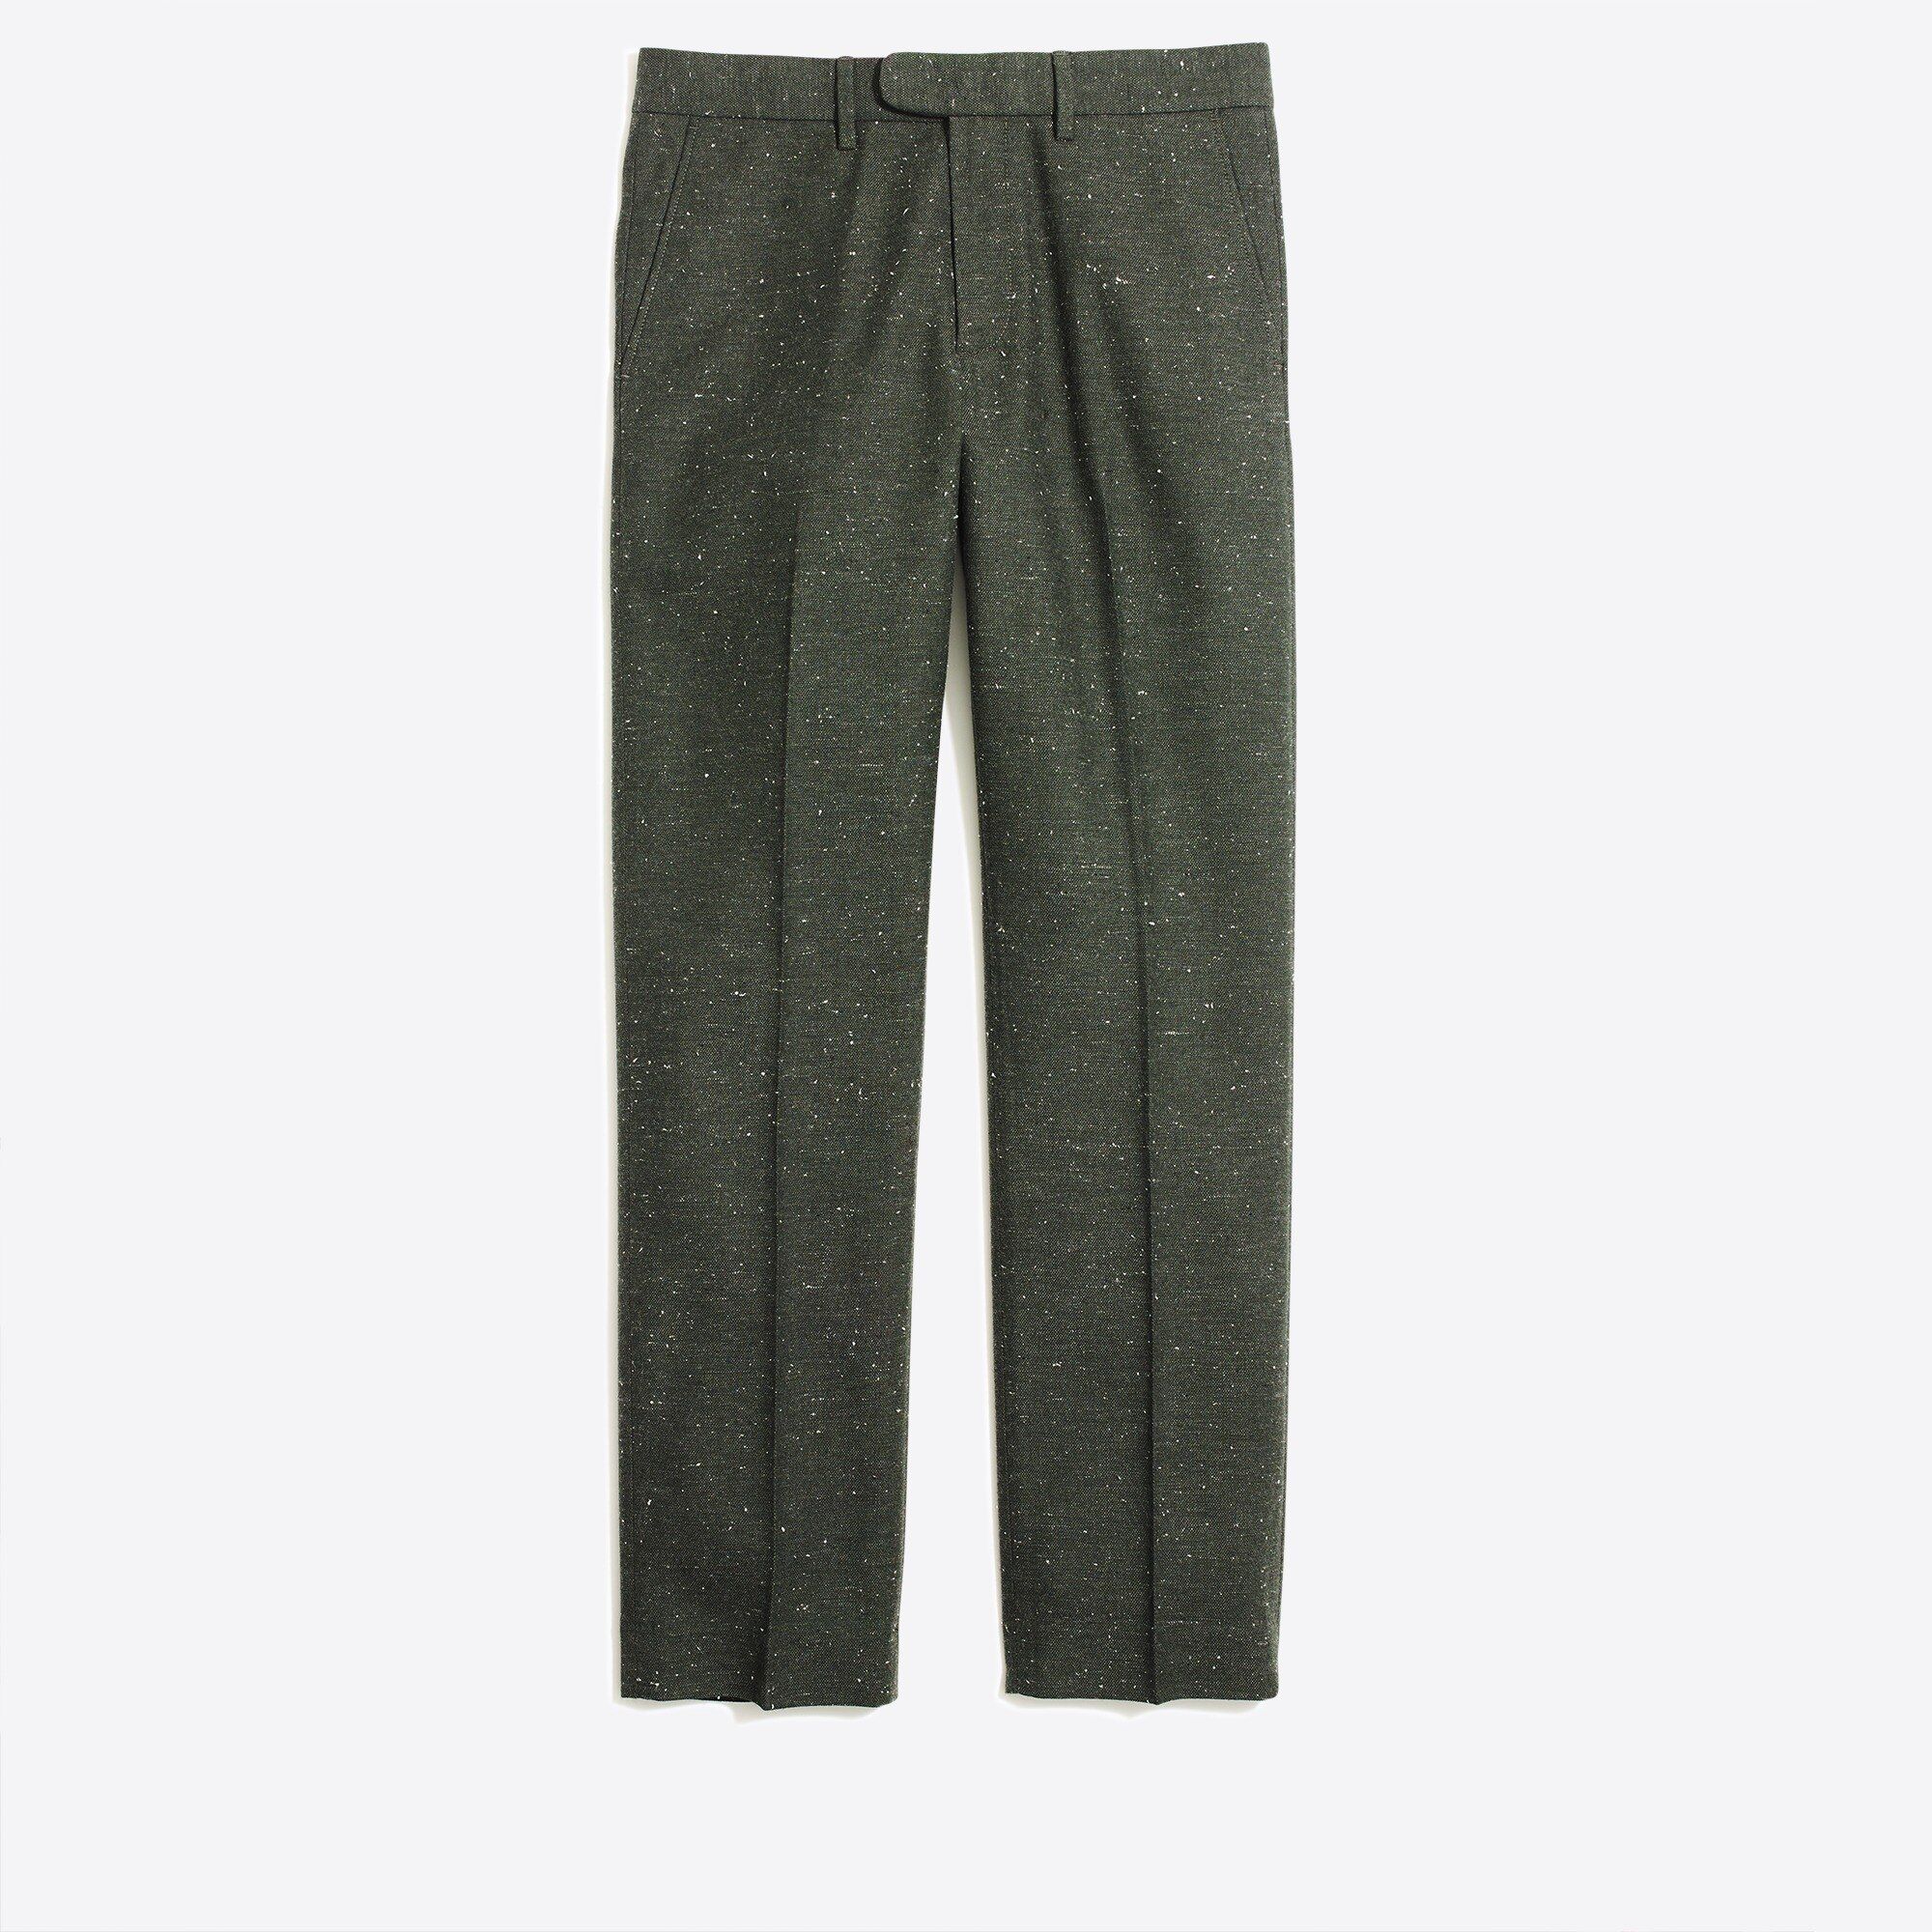 Flecked Bedford dress pant